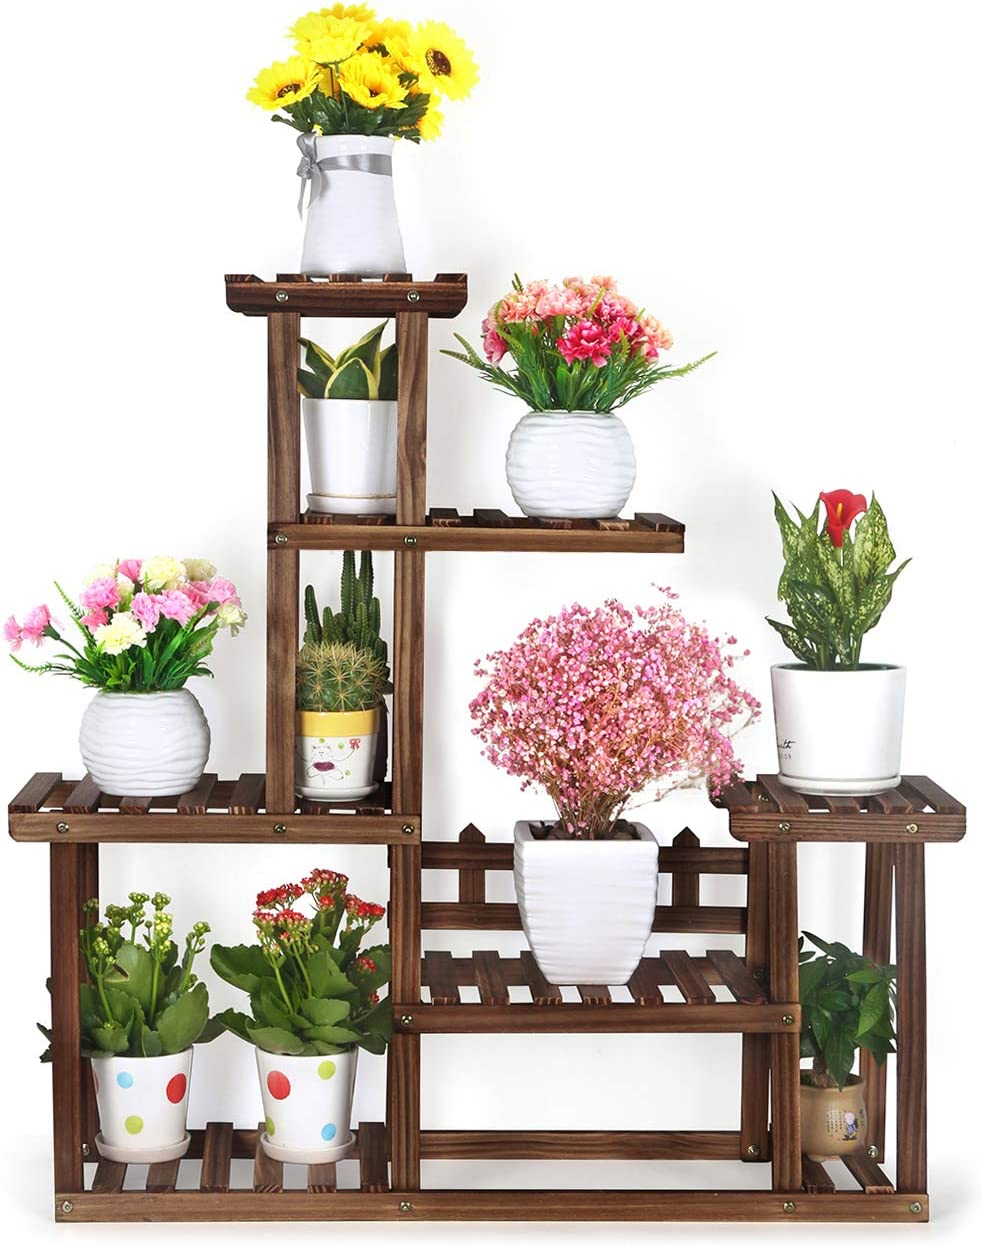 Foldify Pine Wood Plant Stand 5-Tiers 10 Pots Indoor&Outdoor Flower Plant Display Shelf Storage Rack Ladder Stand Rack Unit for Living Room Corner Patio Balcony Garden